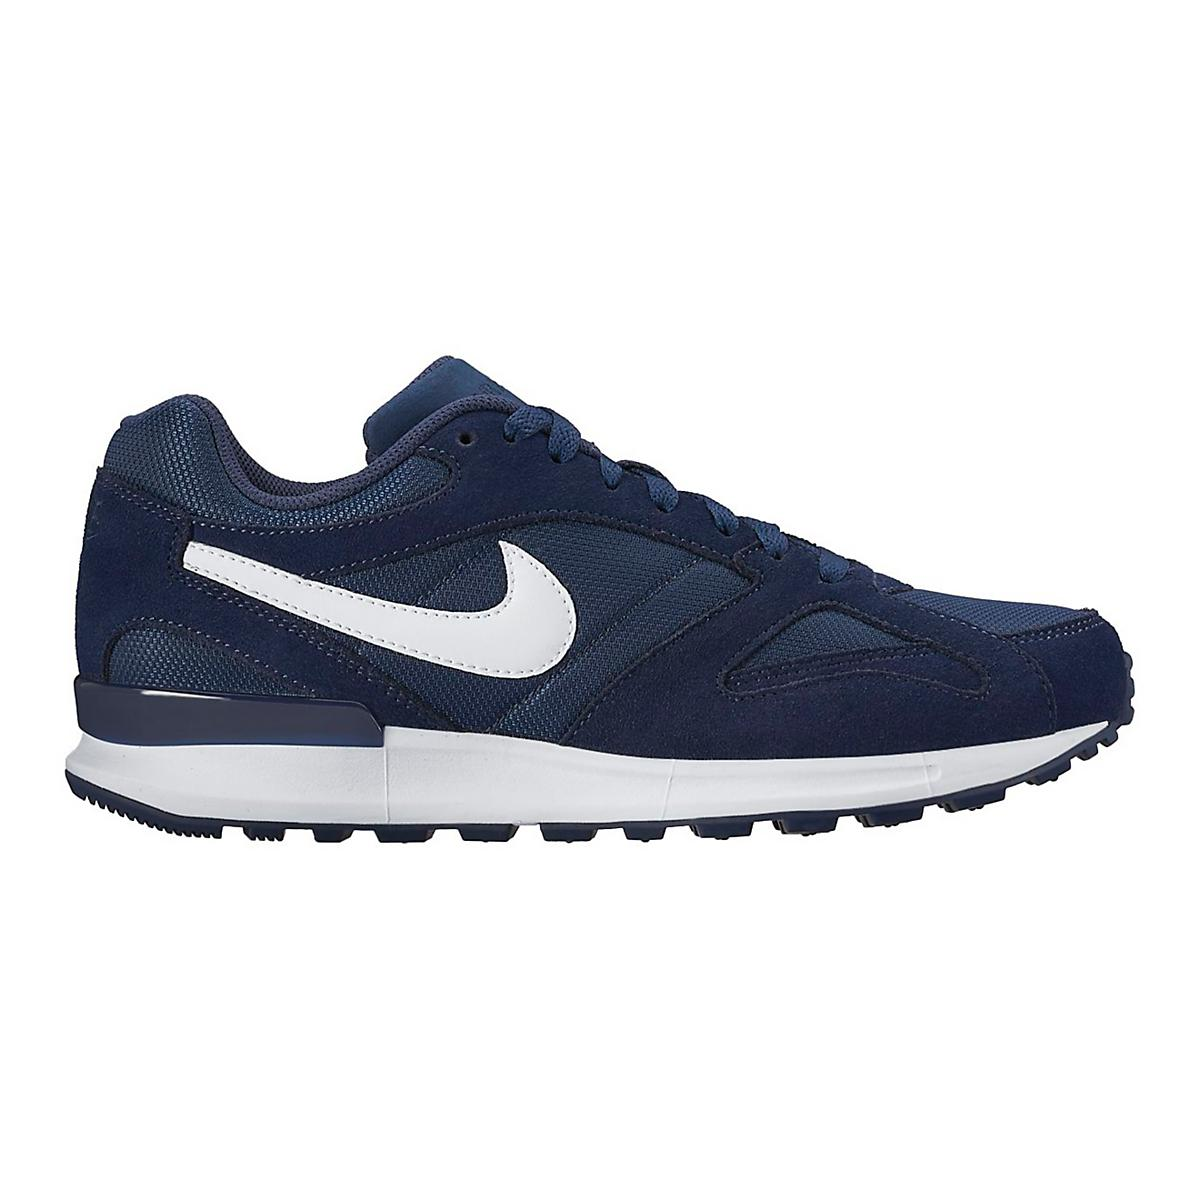 Men s Nike Air Pegasus New Racer Casual Shoe at Road Runner Sports 4e94bfef2